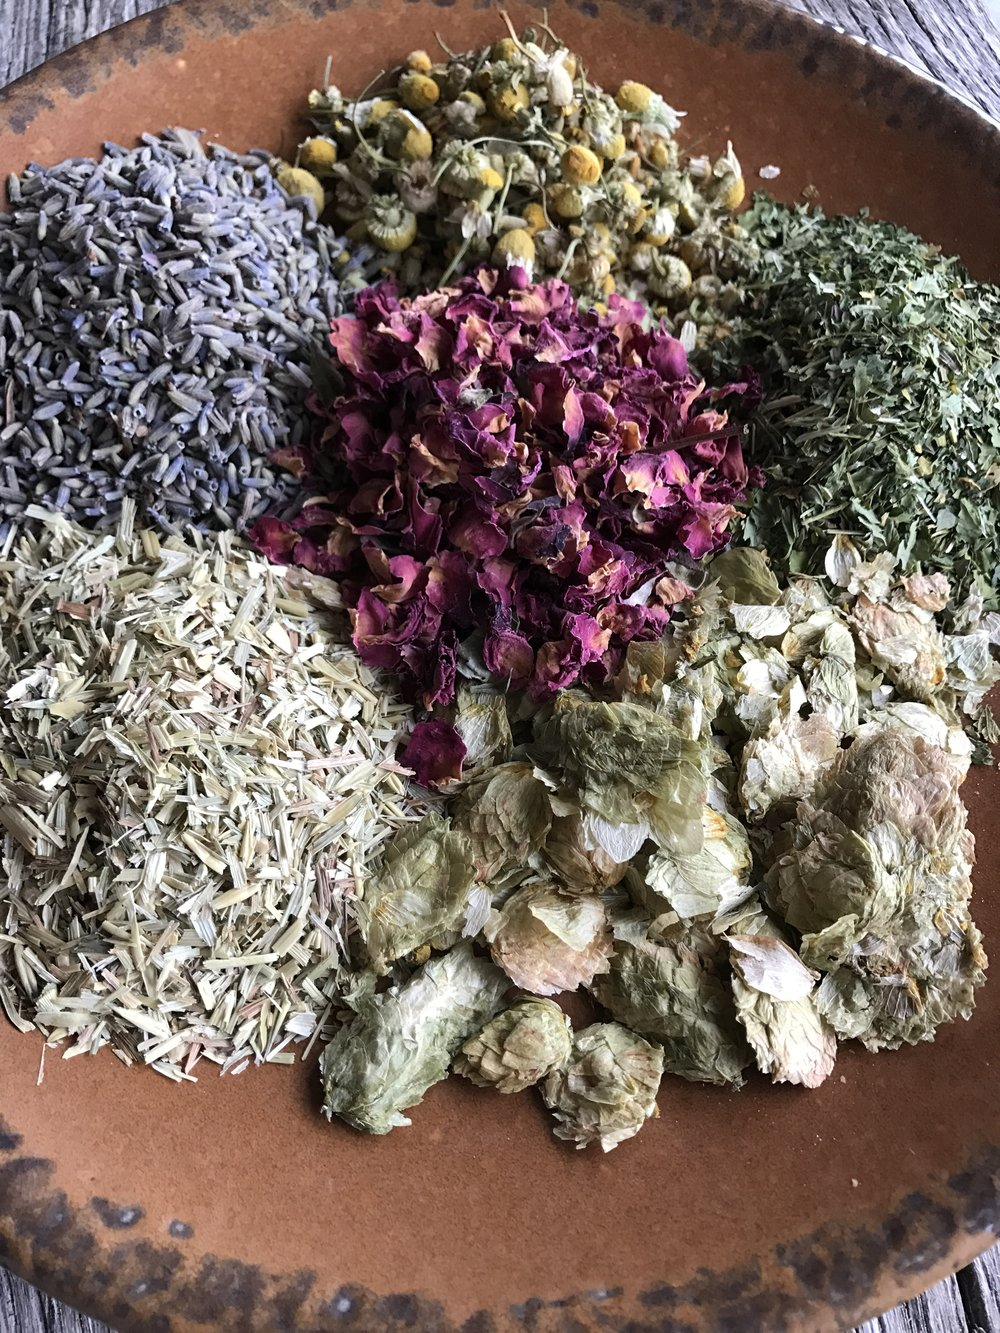 You'll learn how to use herbs to naturally color your soaps and give them extra healthy properties for your skin!